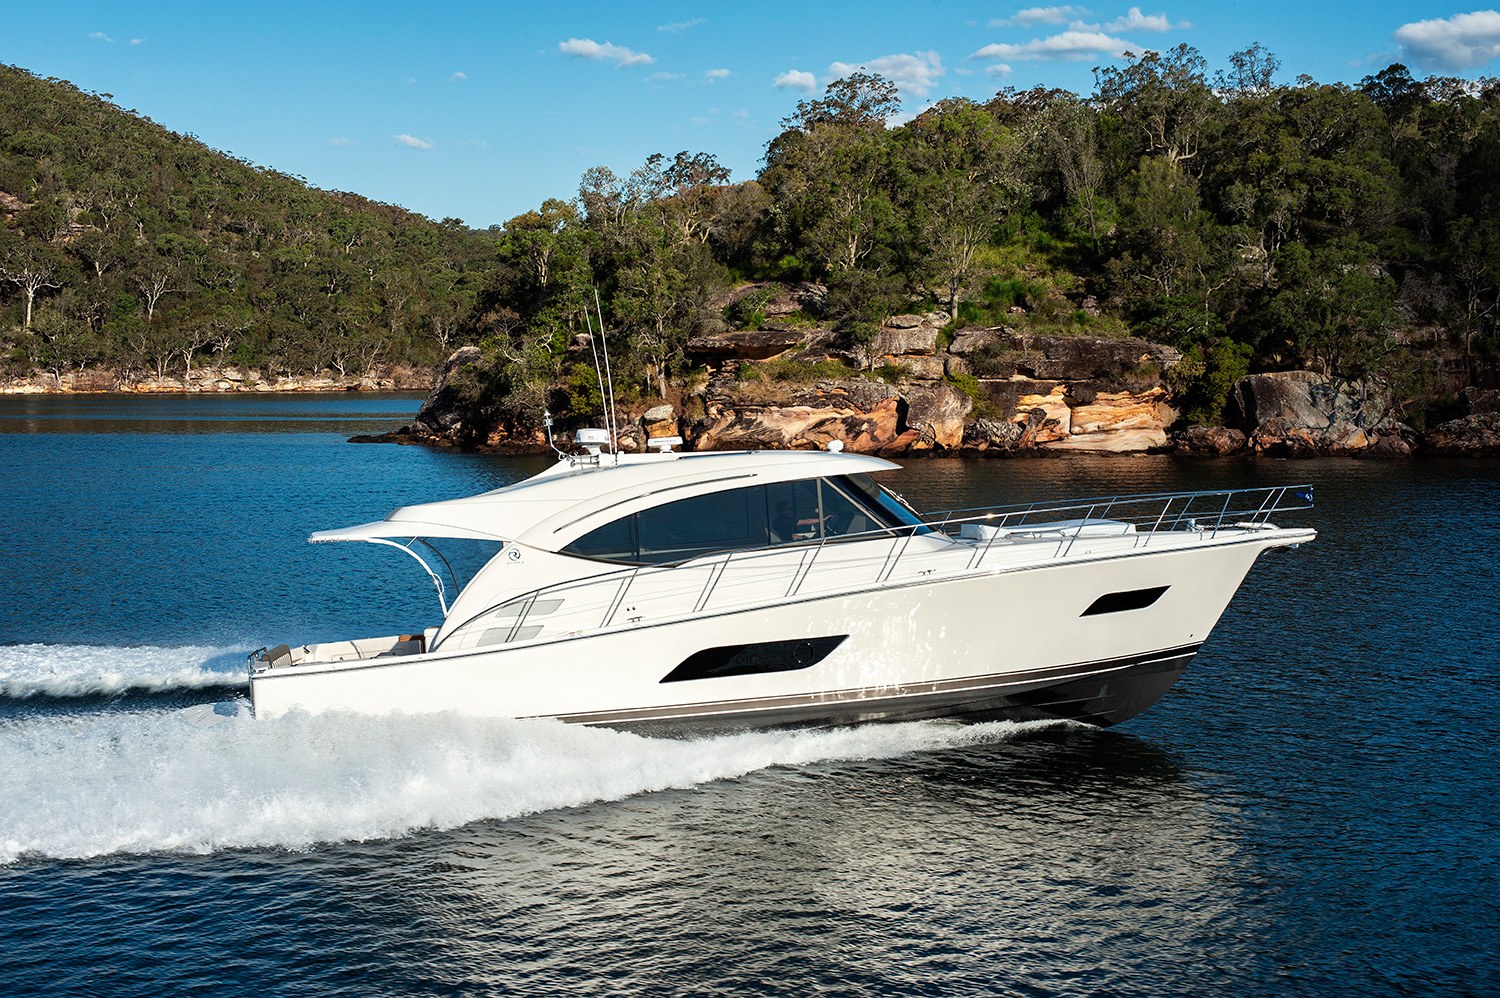 Riviera 525 SUV Yacht for Sale - running